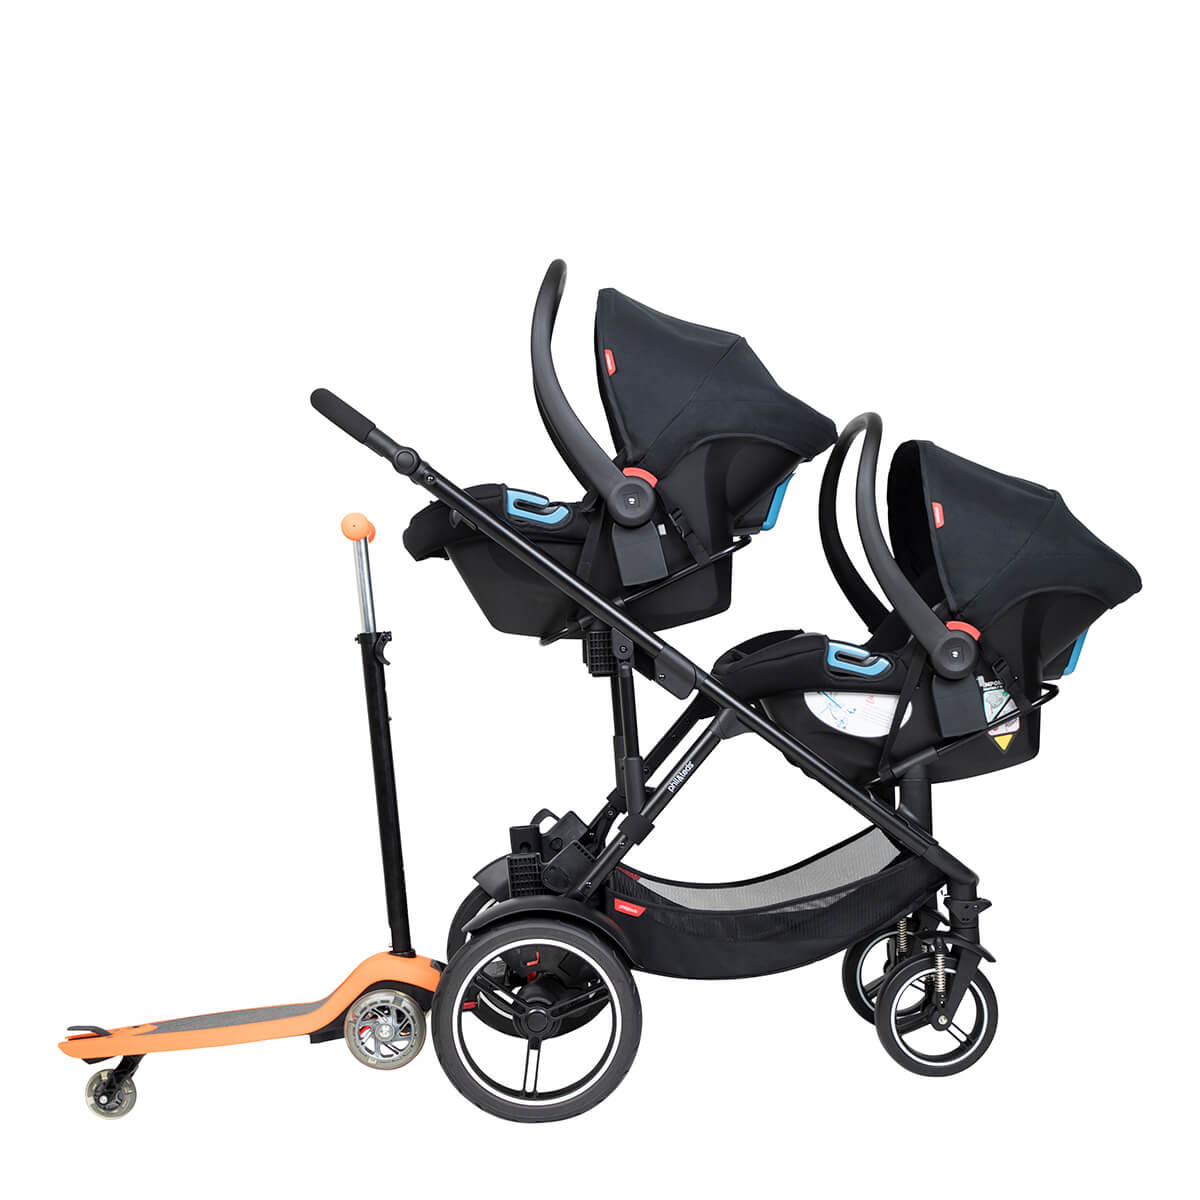 https://cdn.accentuate.io/4511397118049/19794908643498/philteds-voyager-buggy-with-double-travel-systems-and-freerider-stroller-board-in-the-rear-v1626485396093.jpg?1200x1200